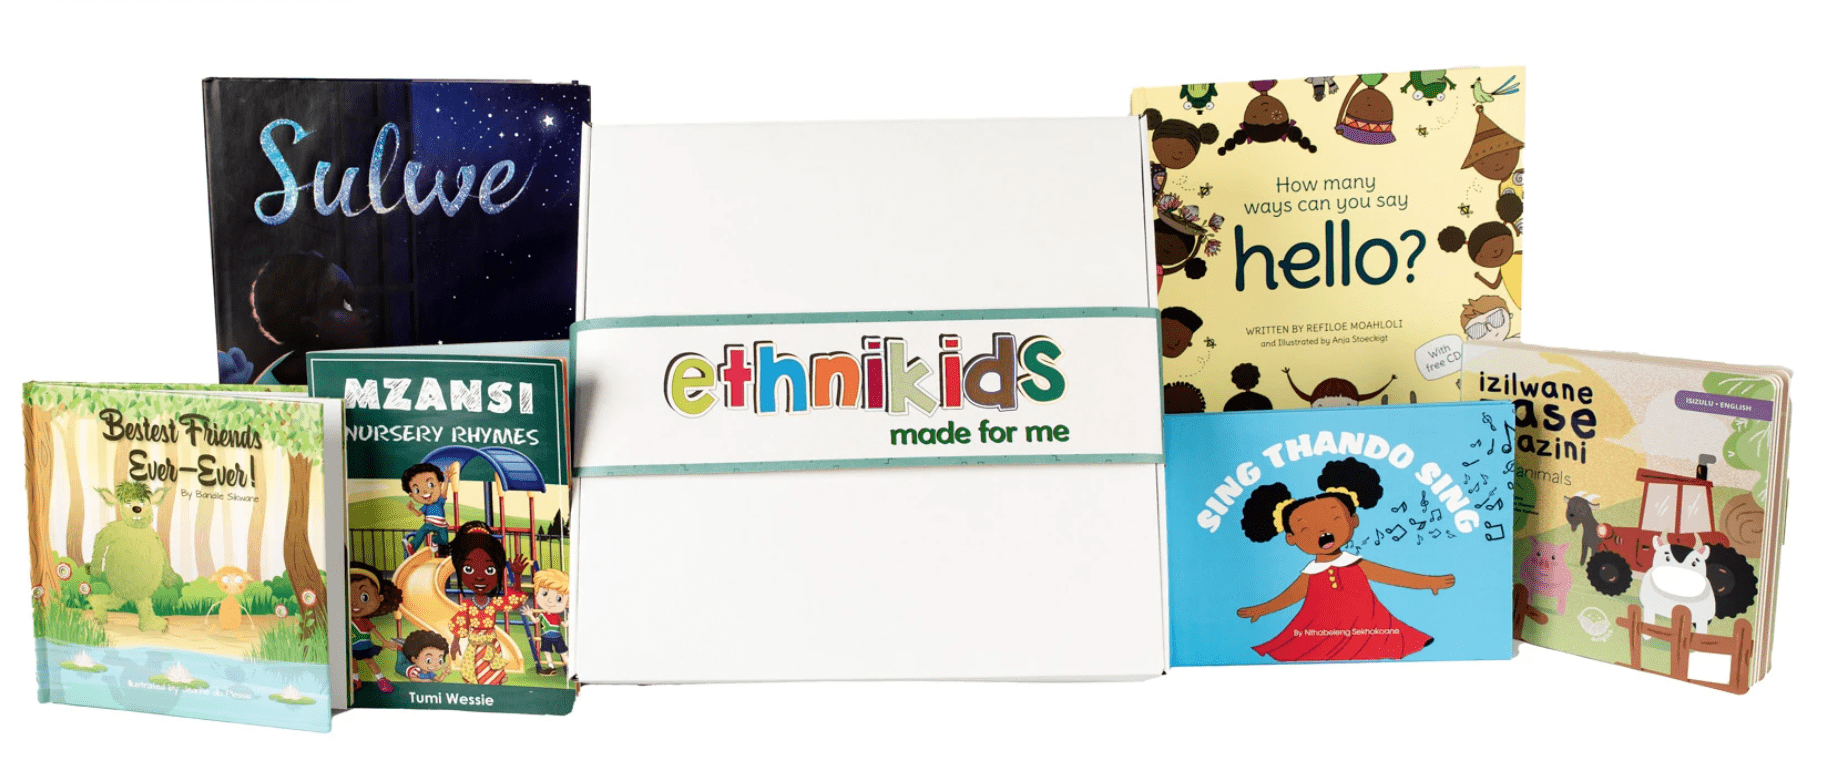 Ethnikids Childrens Books That Encourage Diversity